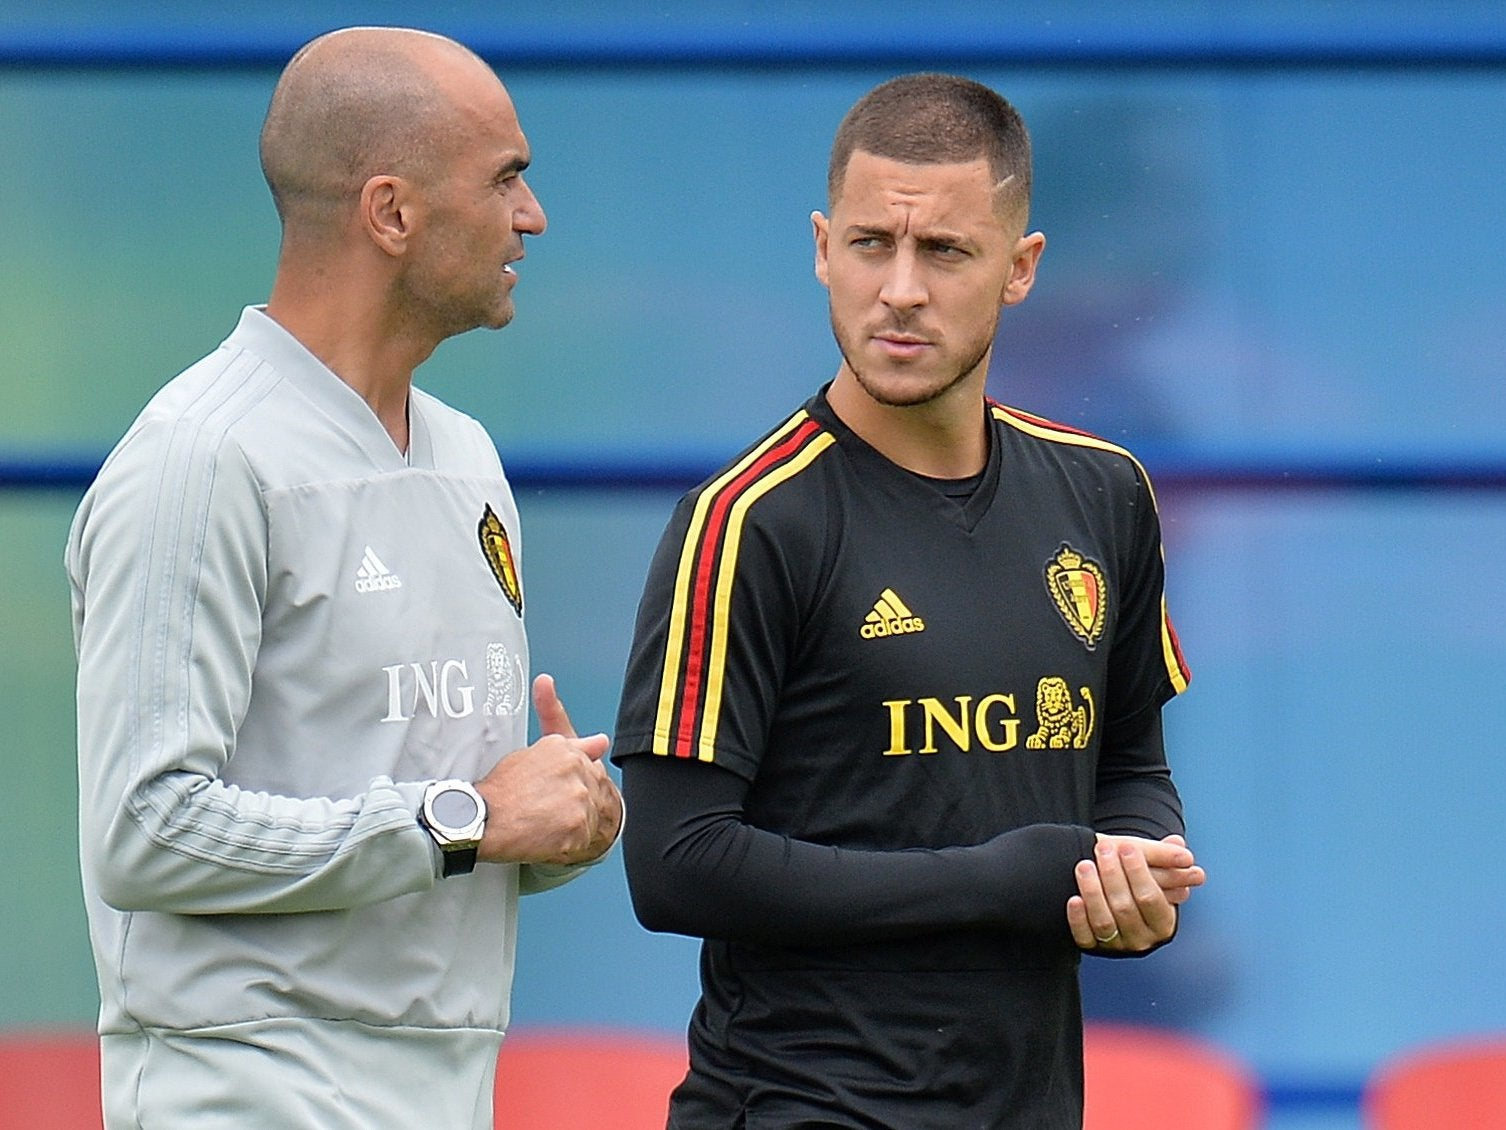 Chelsea transfer news: Eden Hazard urged to join Real Madrid by Belgium manager Roberto Martinez